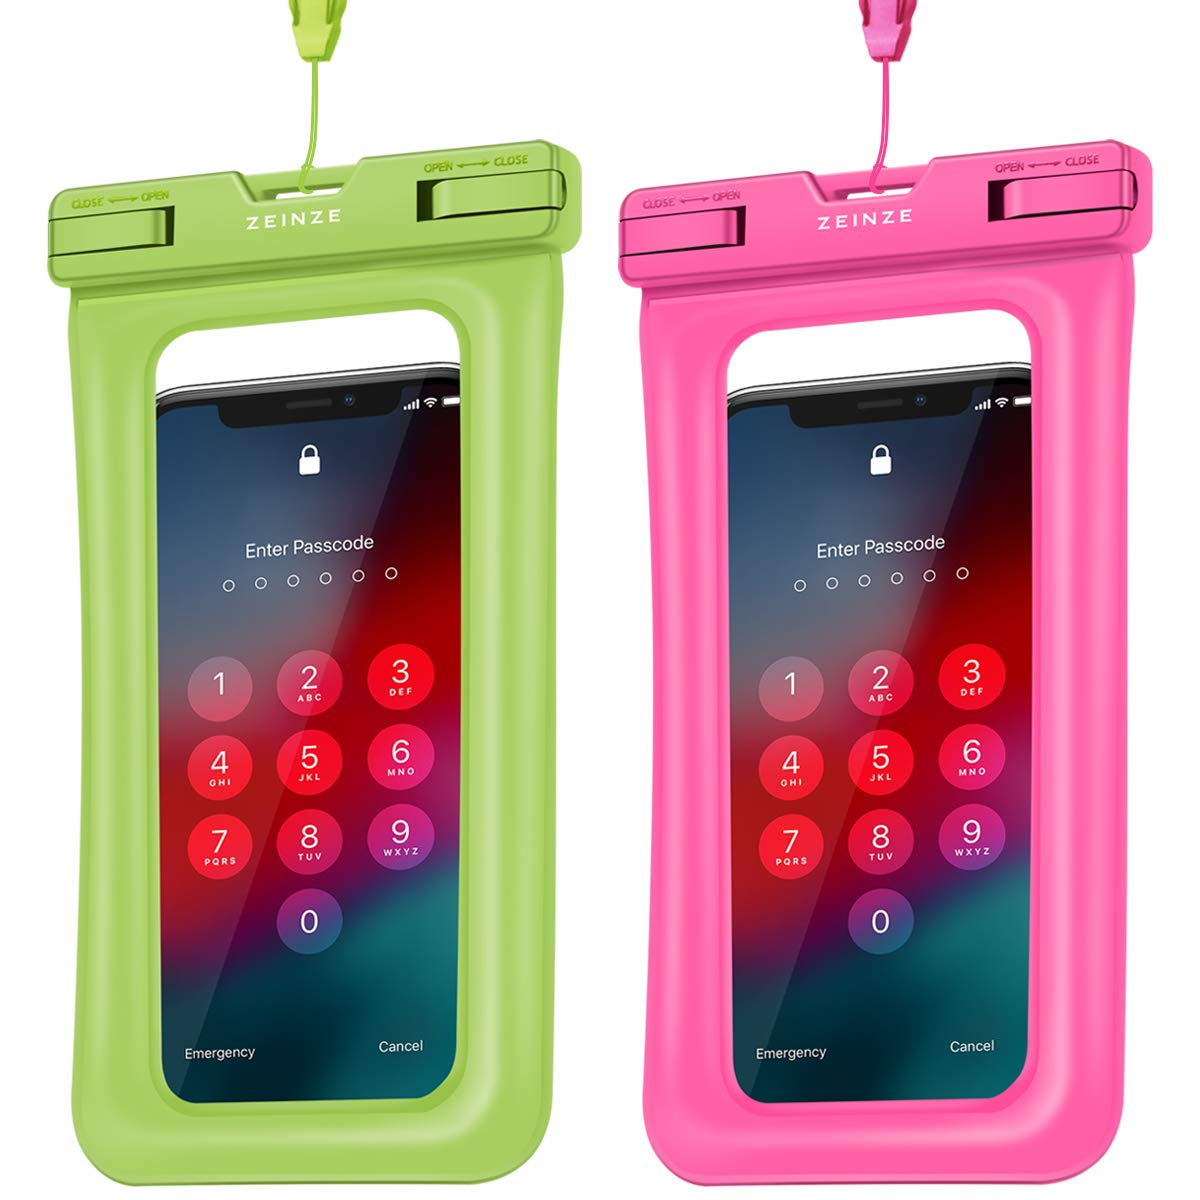 ZEINZE Floating Waterproof Phone Pouch IPX8 Universal Waterproof phone Case Drg Bag for iPhone Xs/Xr/X/8Plus/8/7Plus/7/6s/6 /Samsung Galaxy S10/S9/S8/S7 Devices Up to 6.2''(Green+Pink) by ZEINZE